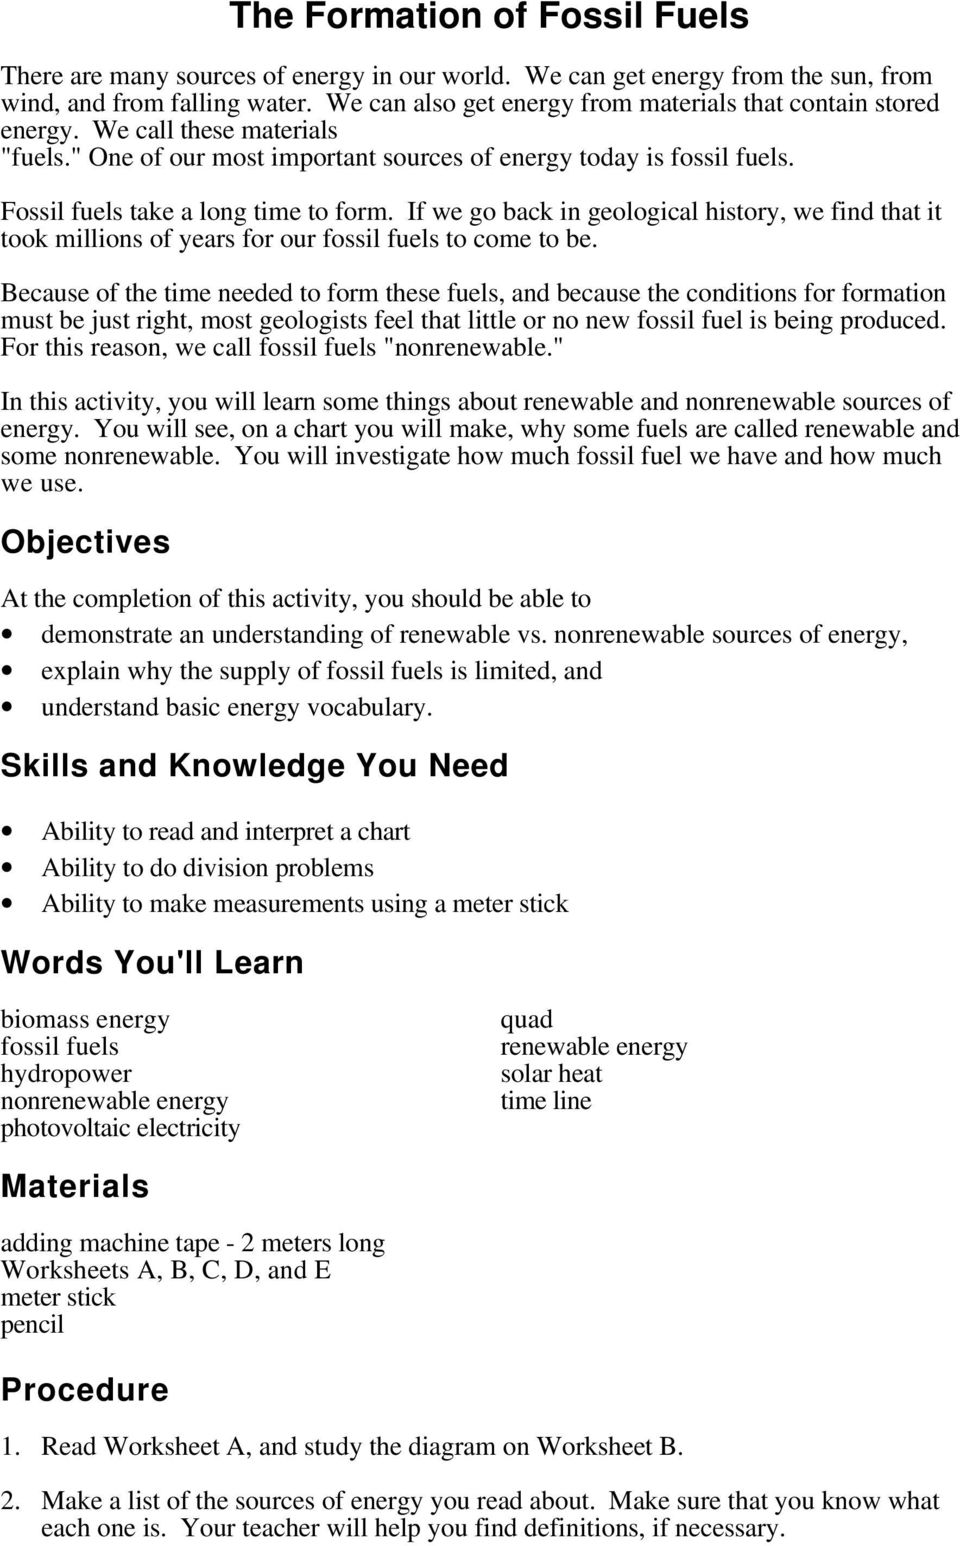 medium resolution of The Formation of Fossil Fuels - PDF Free Download